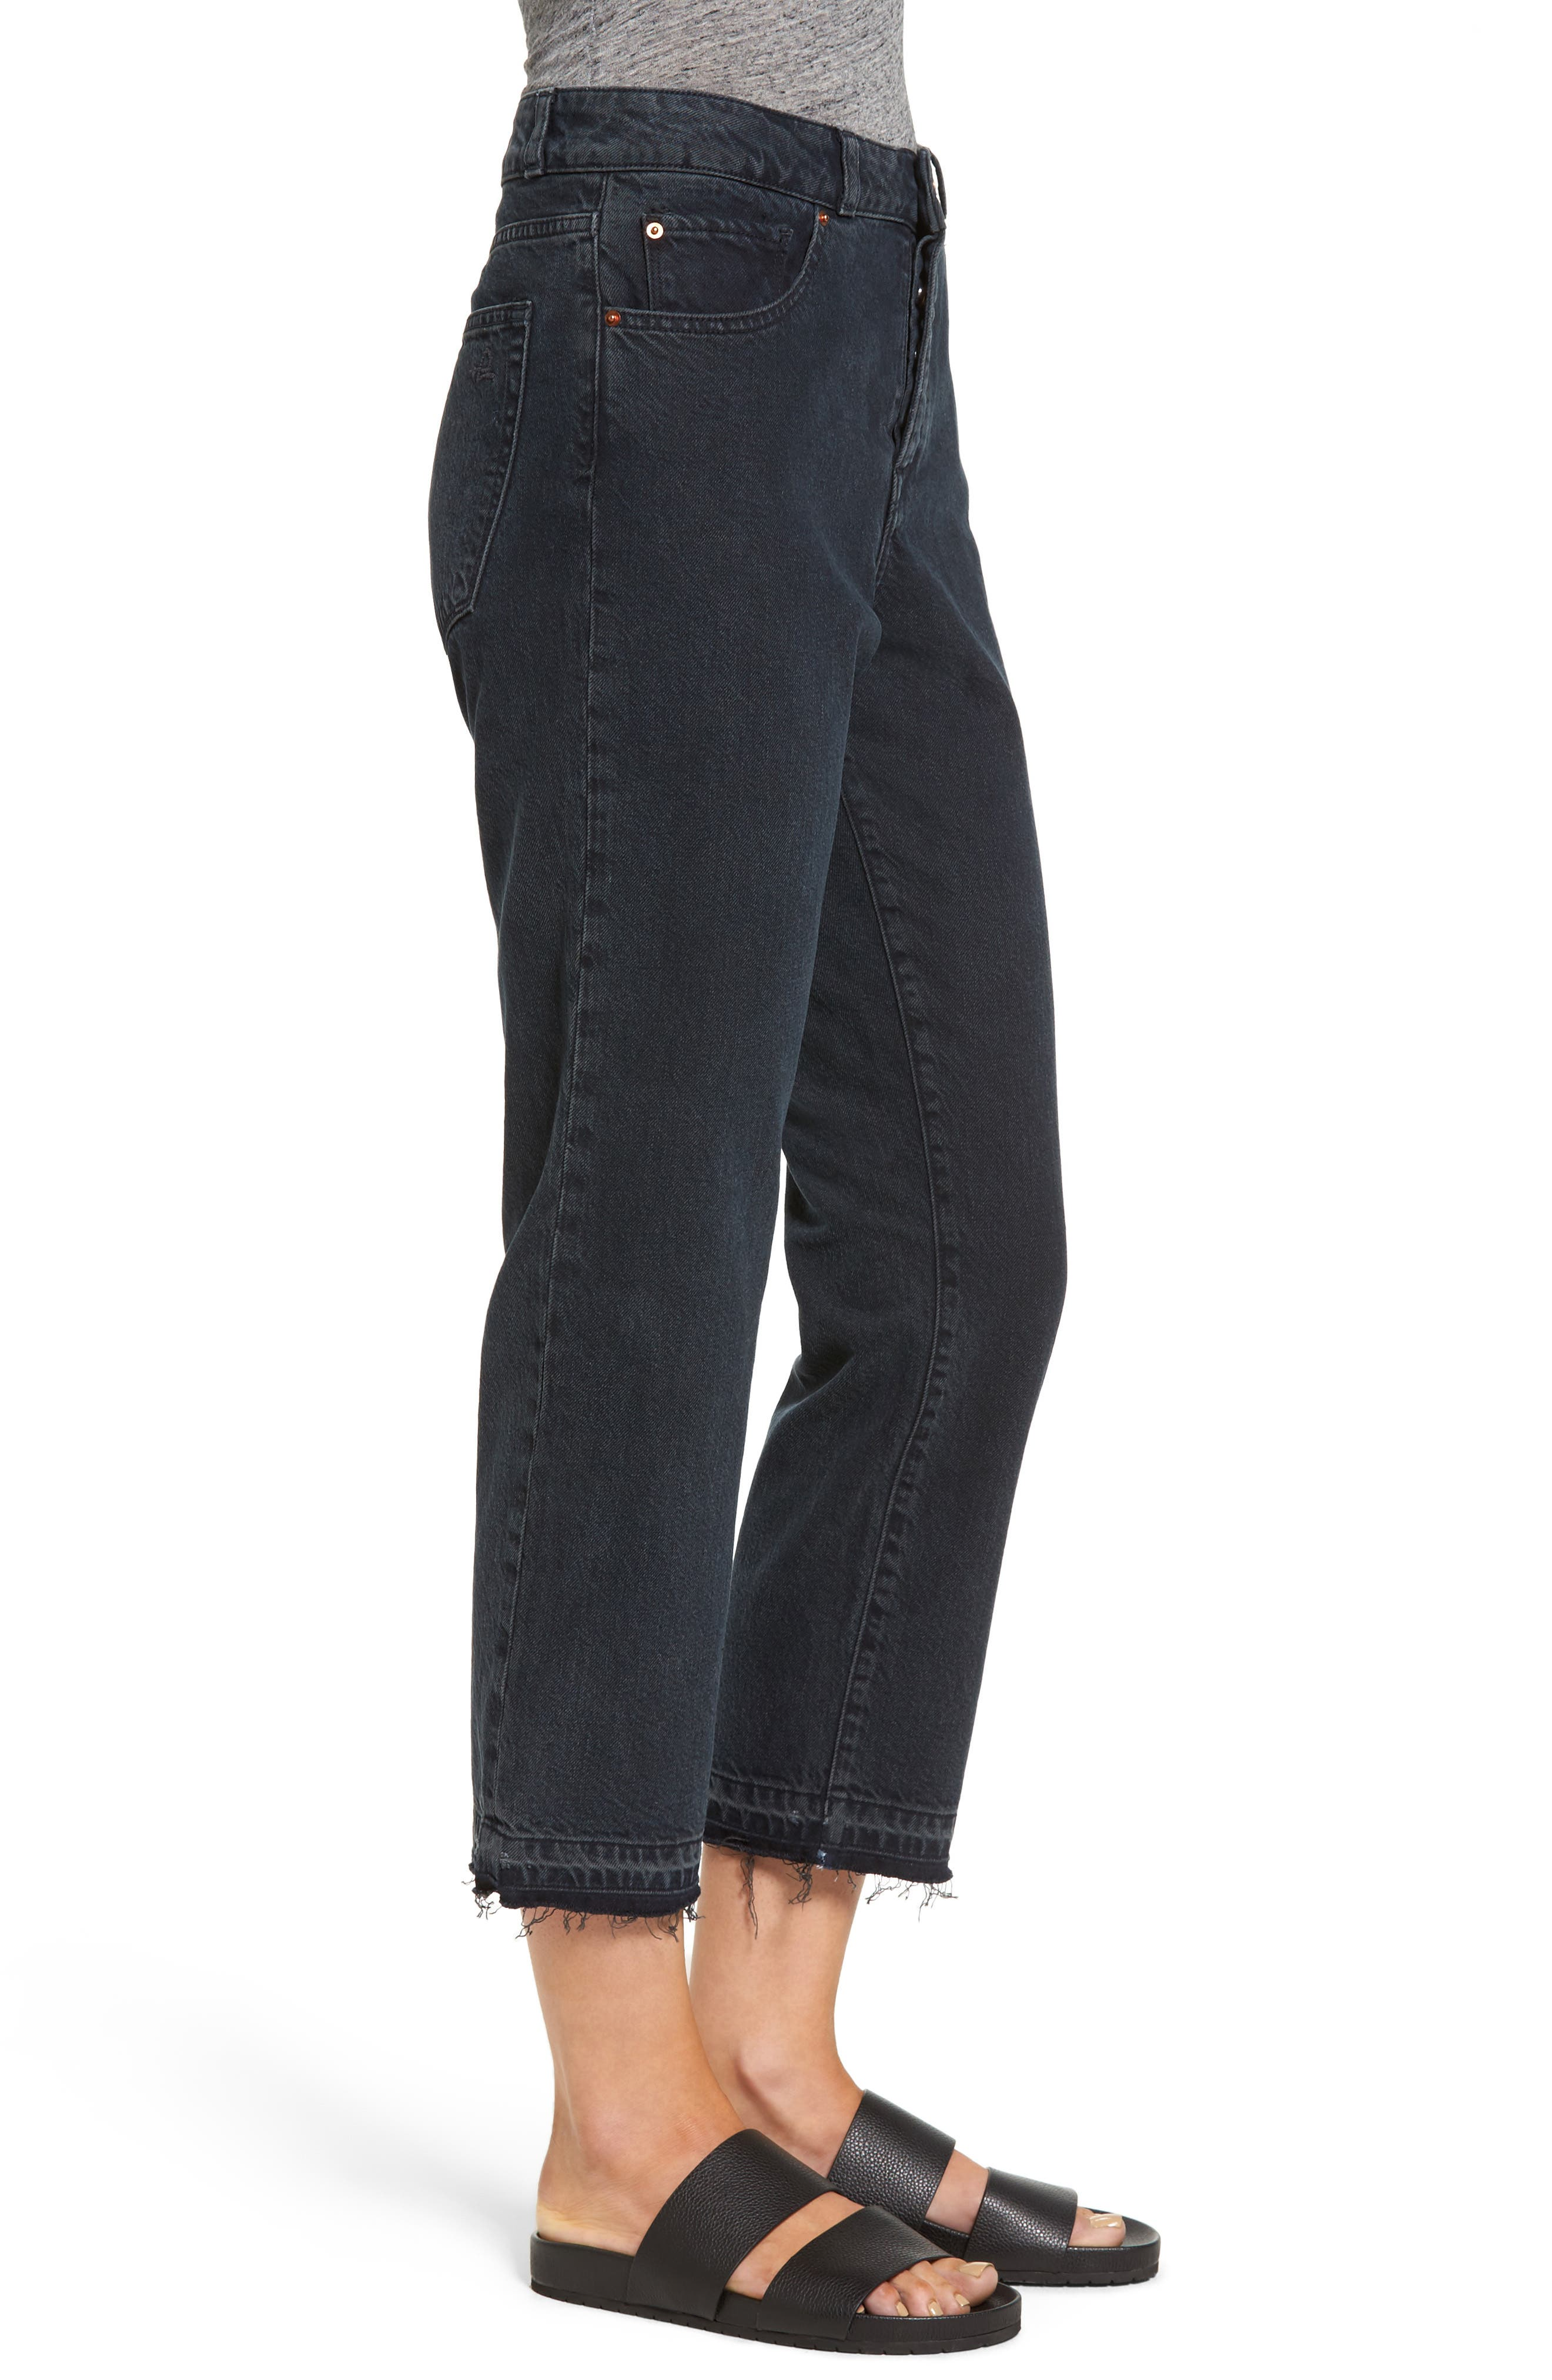 Alternate Image 3  - DL1961 Patti High Rise Straight Leg Jeans (Fallen)